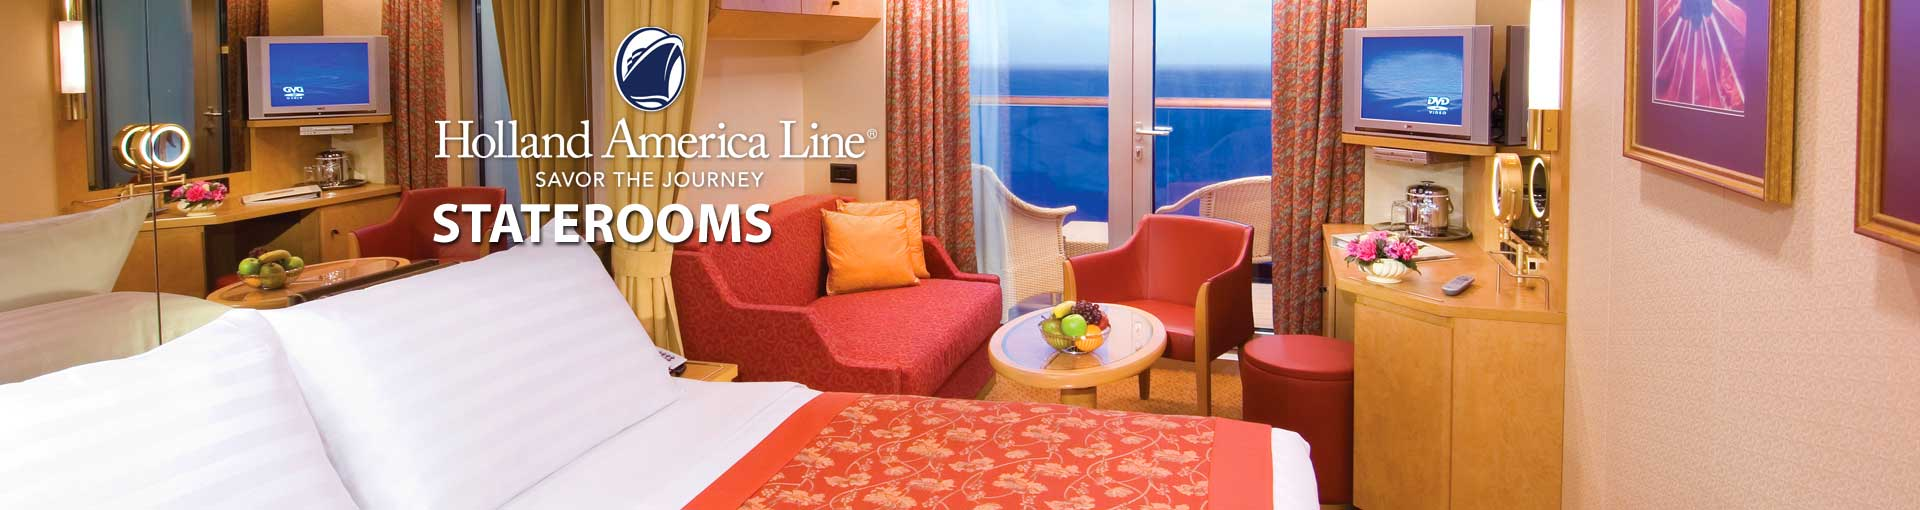 Holland America Line Staterooms